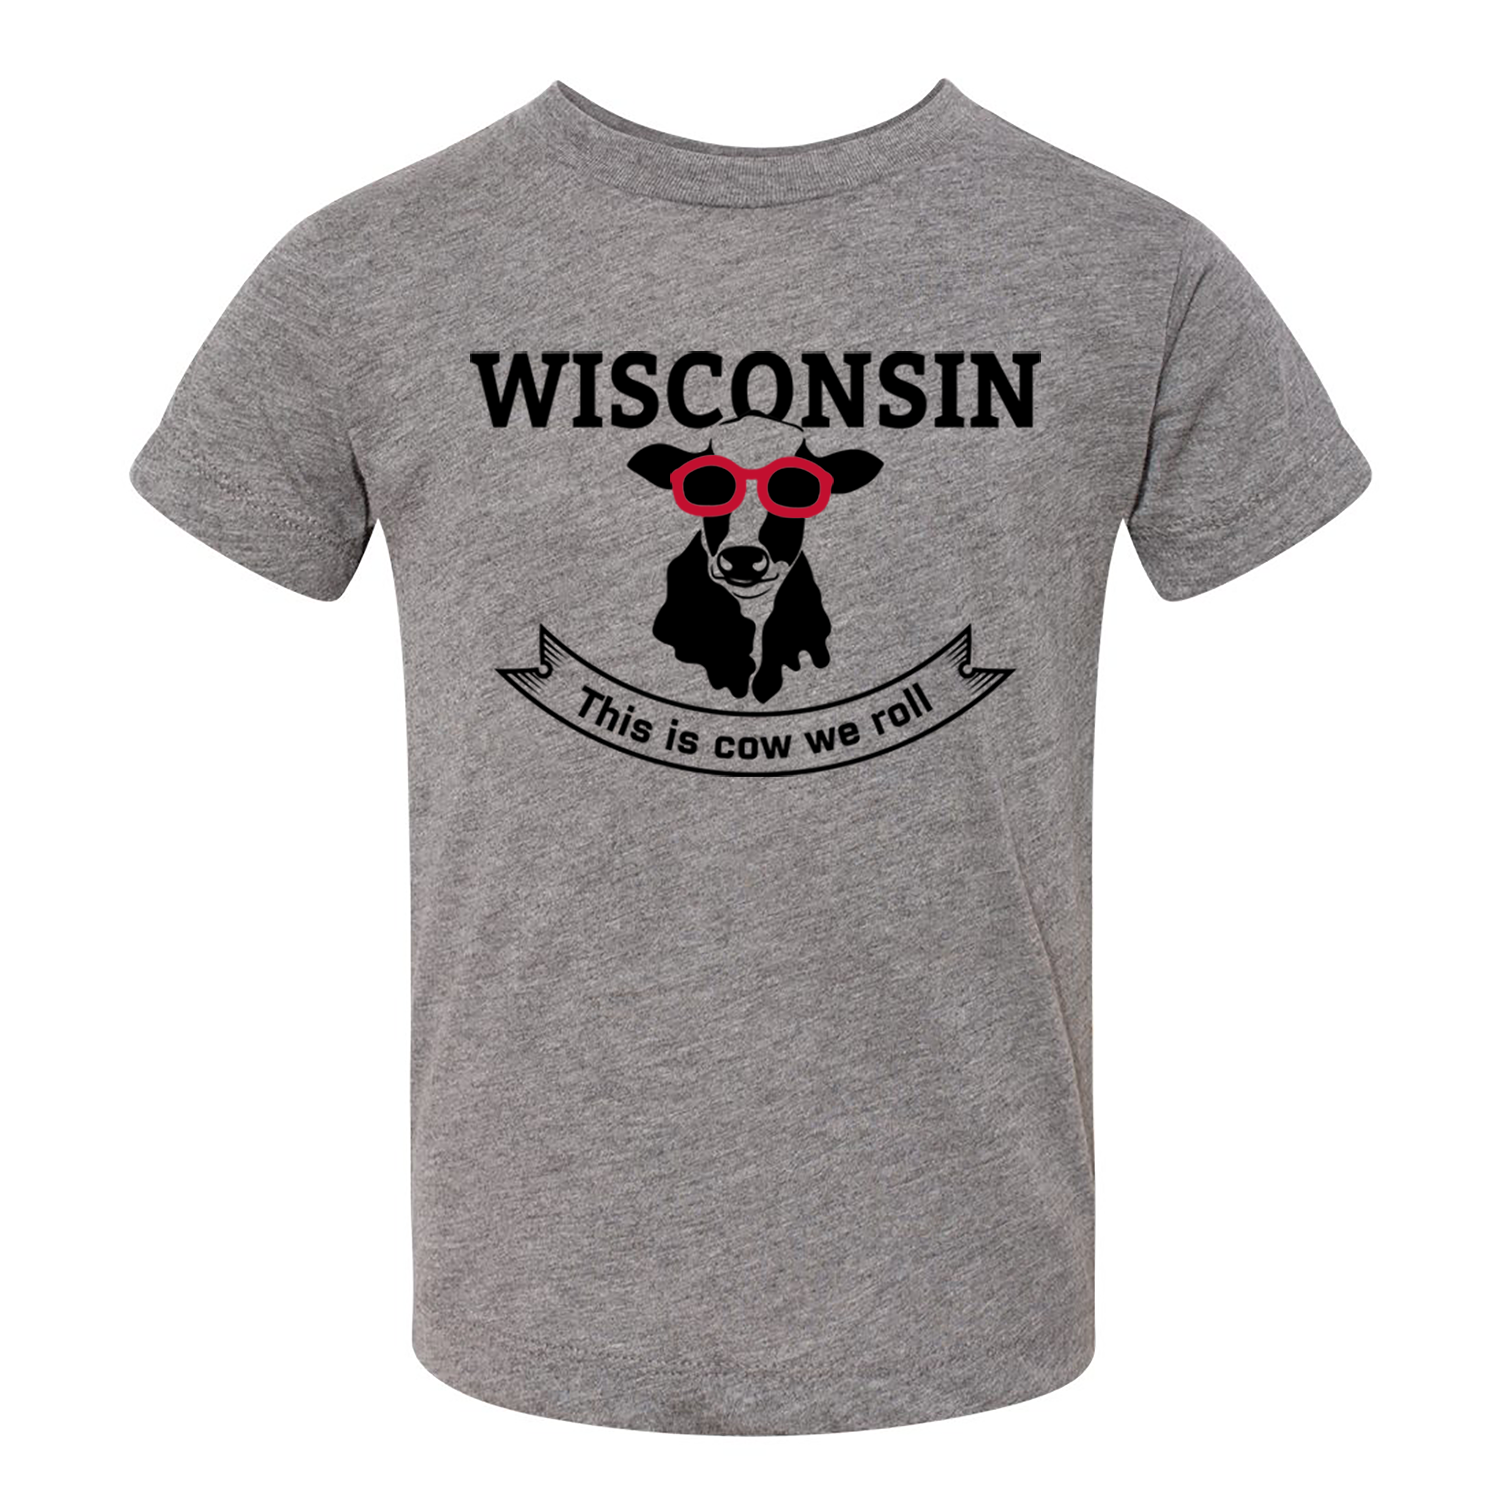 This Is Cow We Roll Wisconsin Youth Triblend Tee